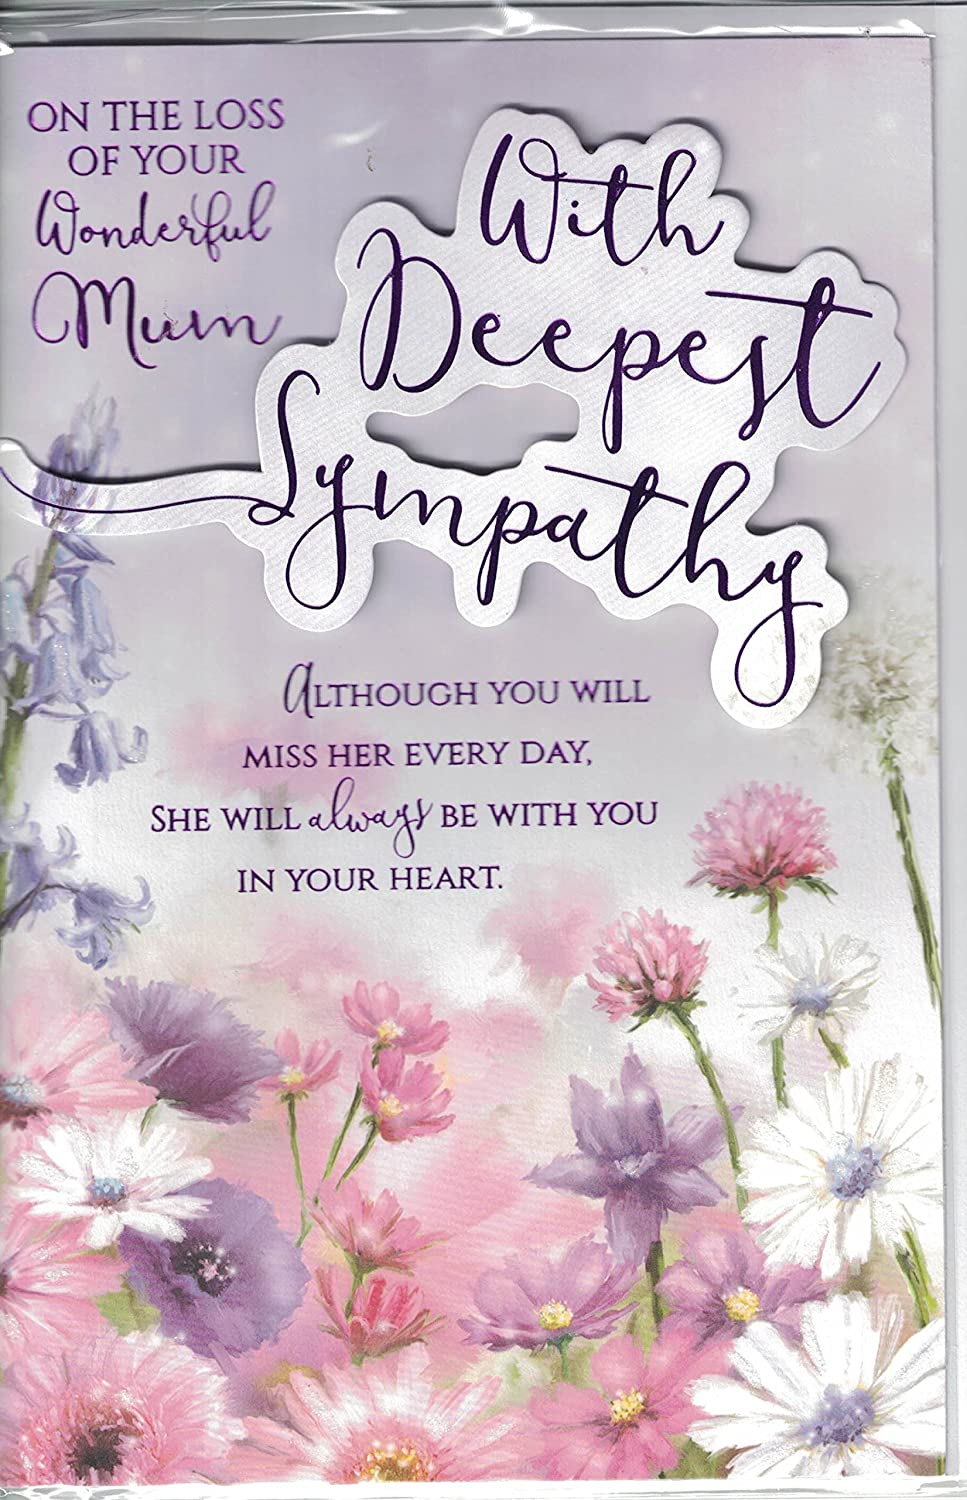 Sympathy Card On The Loss Of Your Wonderful Mum With Deepest